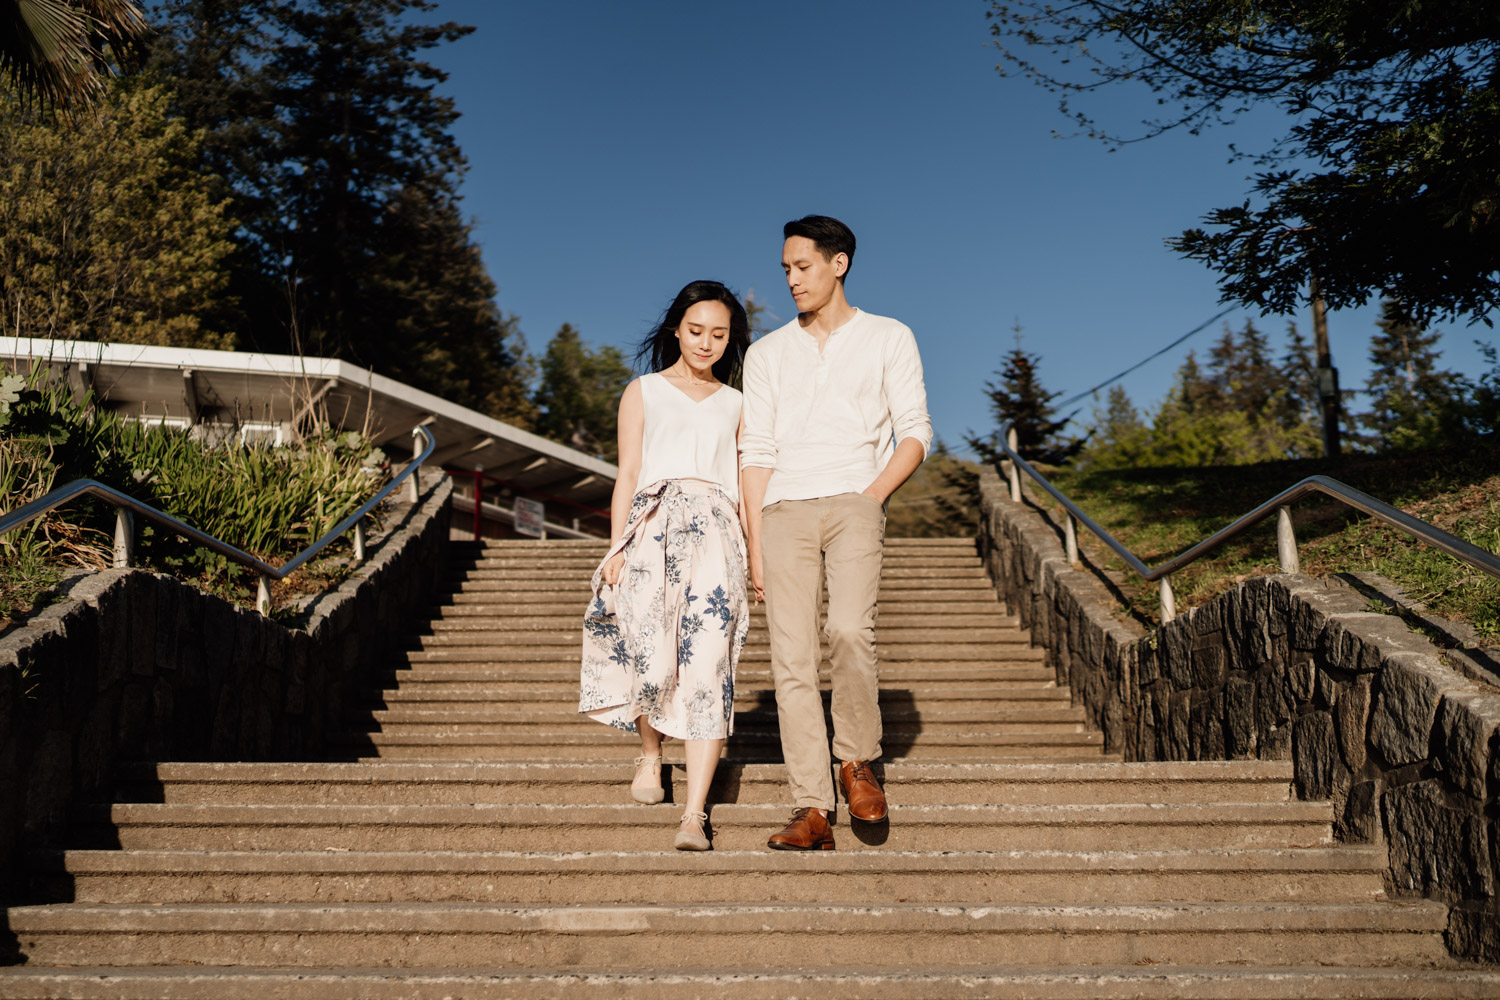 third beach engagement photography in stanley park vancouver bc